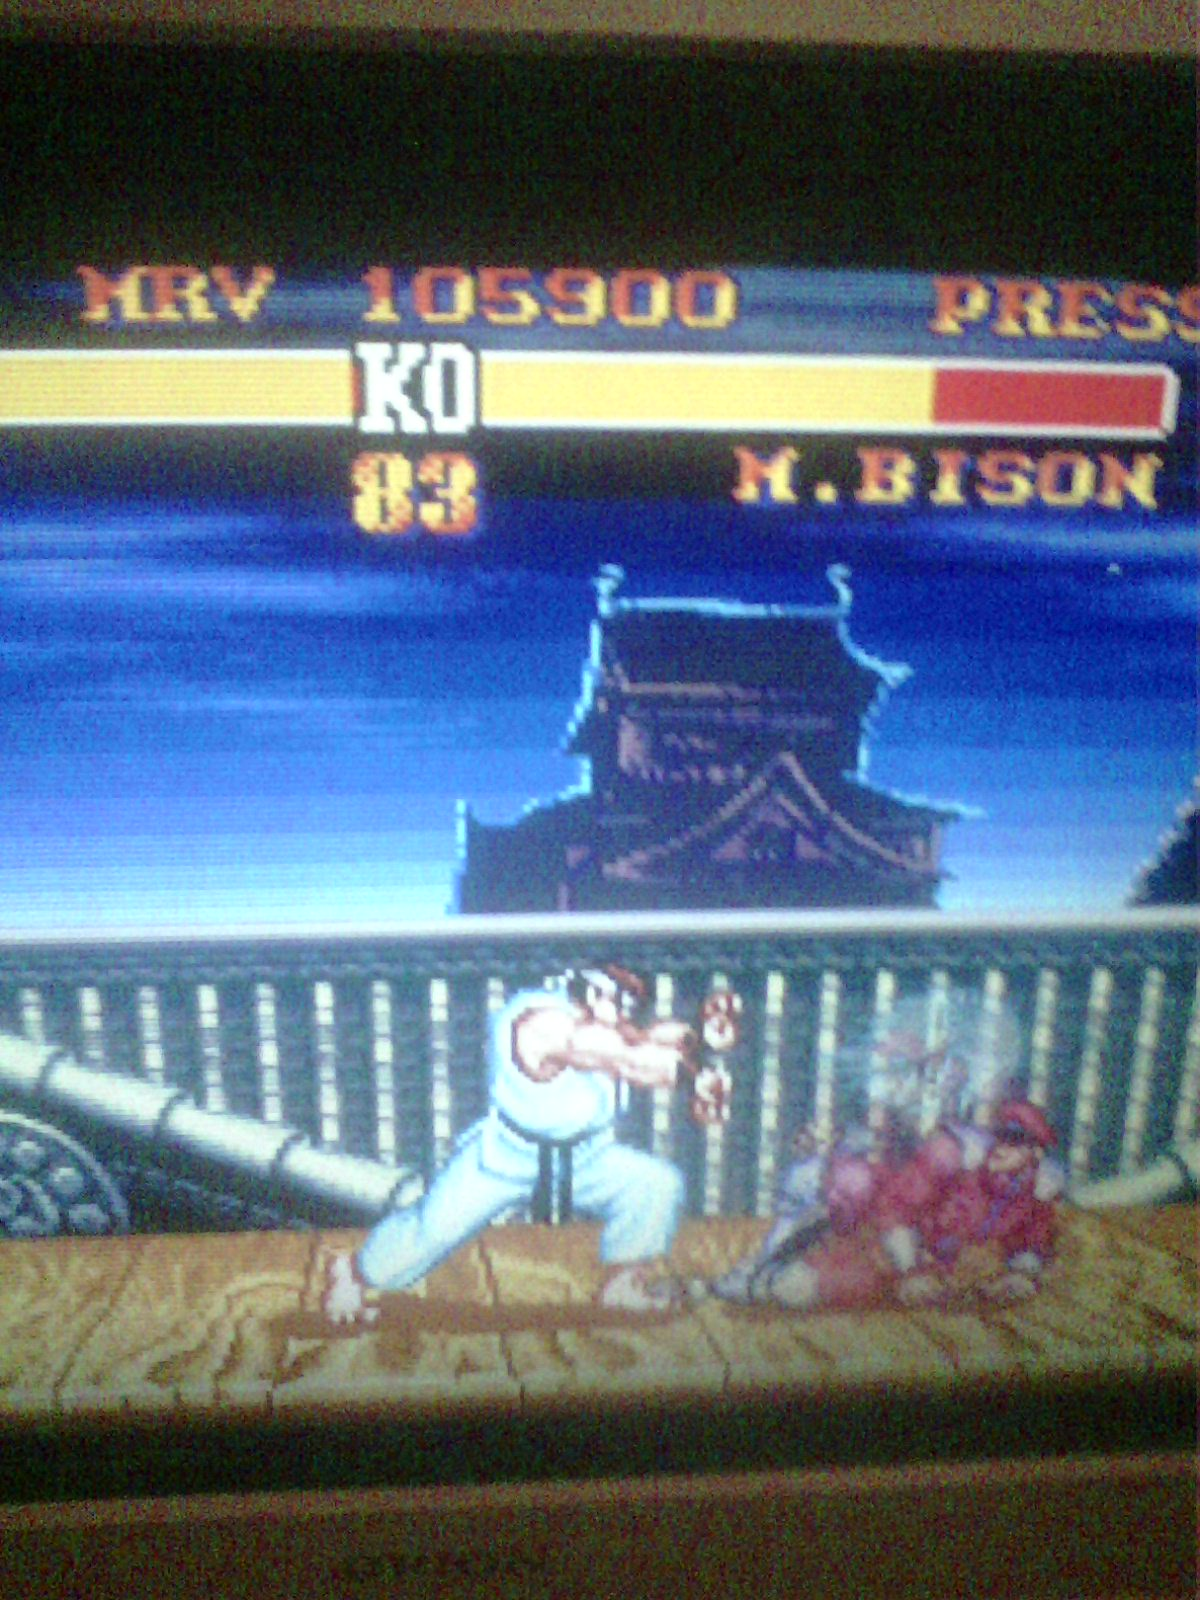 Street Fighter II Turbo: Hyper Fighting [Normal / Difficulty 1] 105,900 points